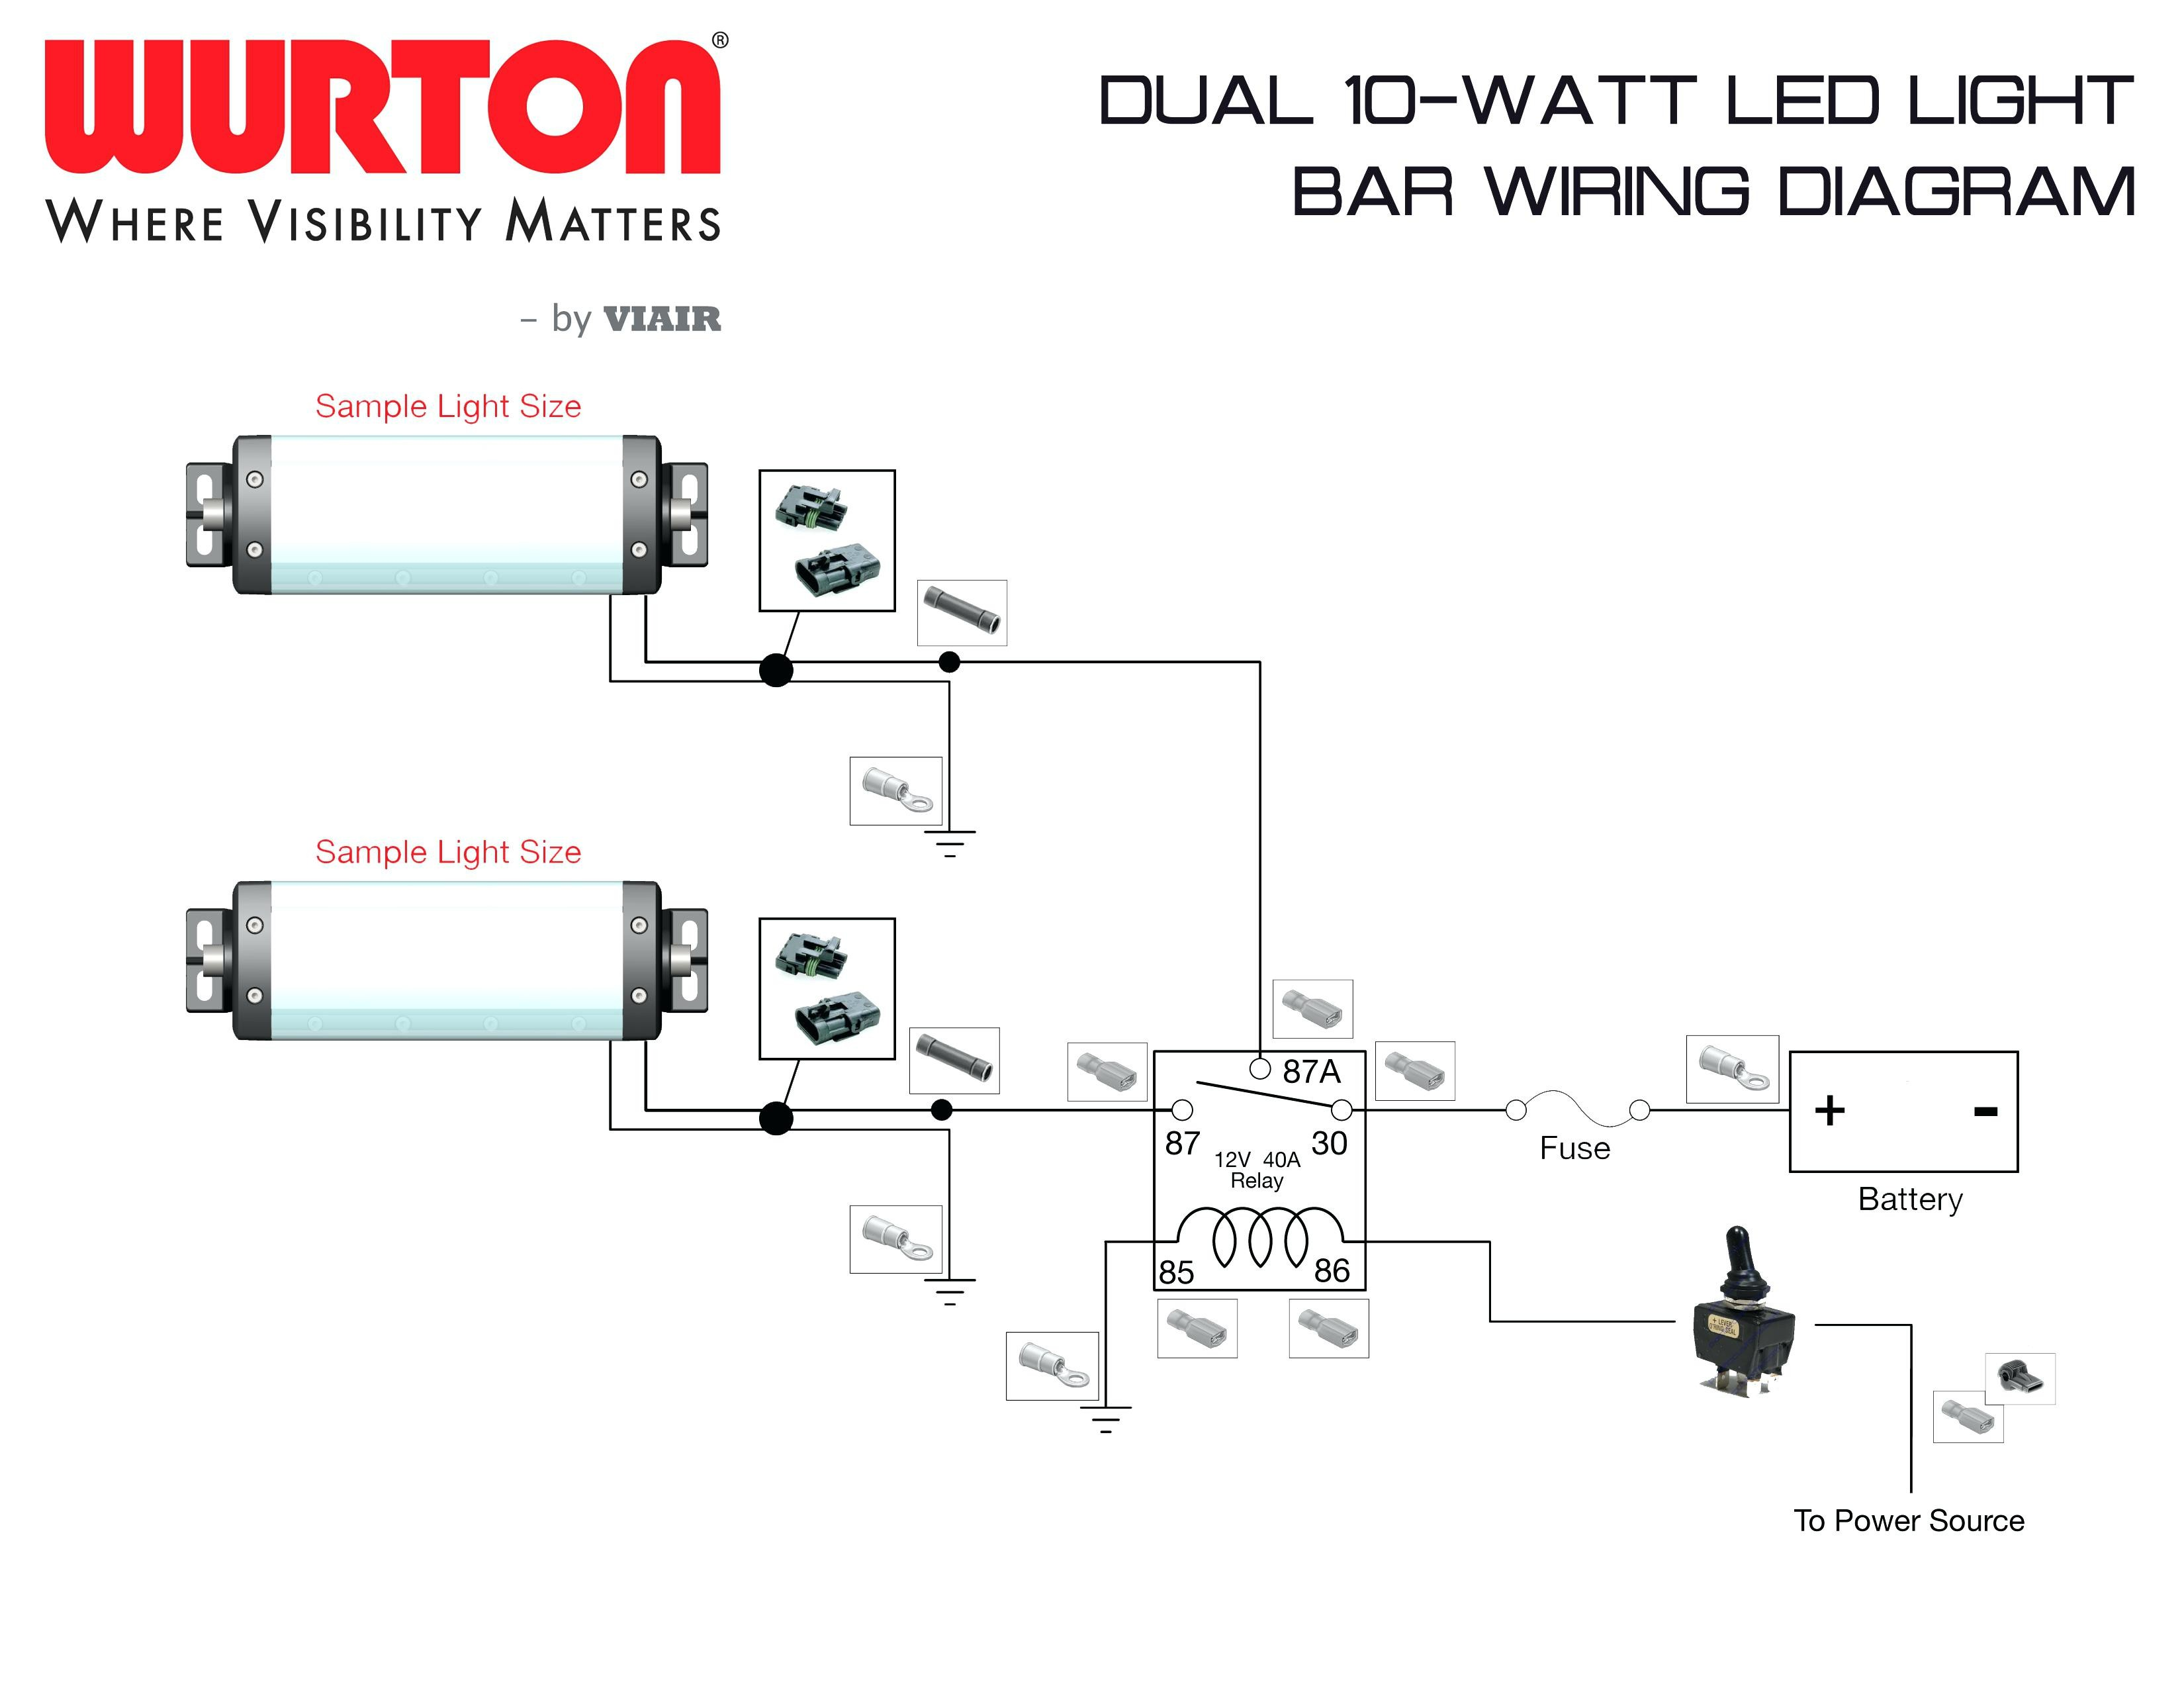 12v Relay Wiring Diagram Horn Light Led Bar Wire Up At For Lights And